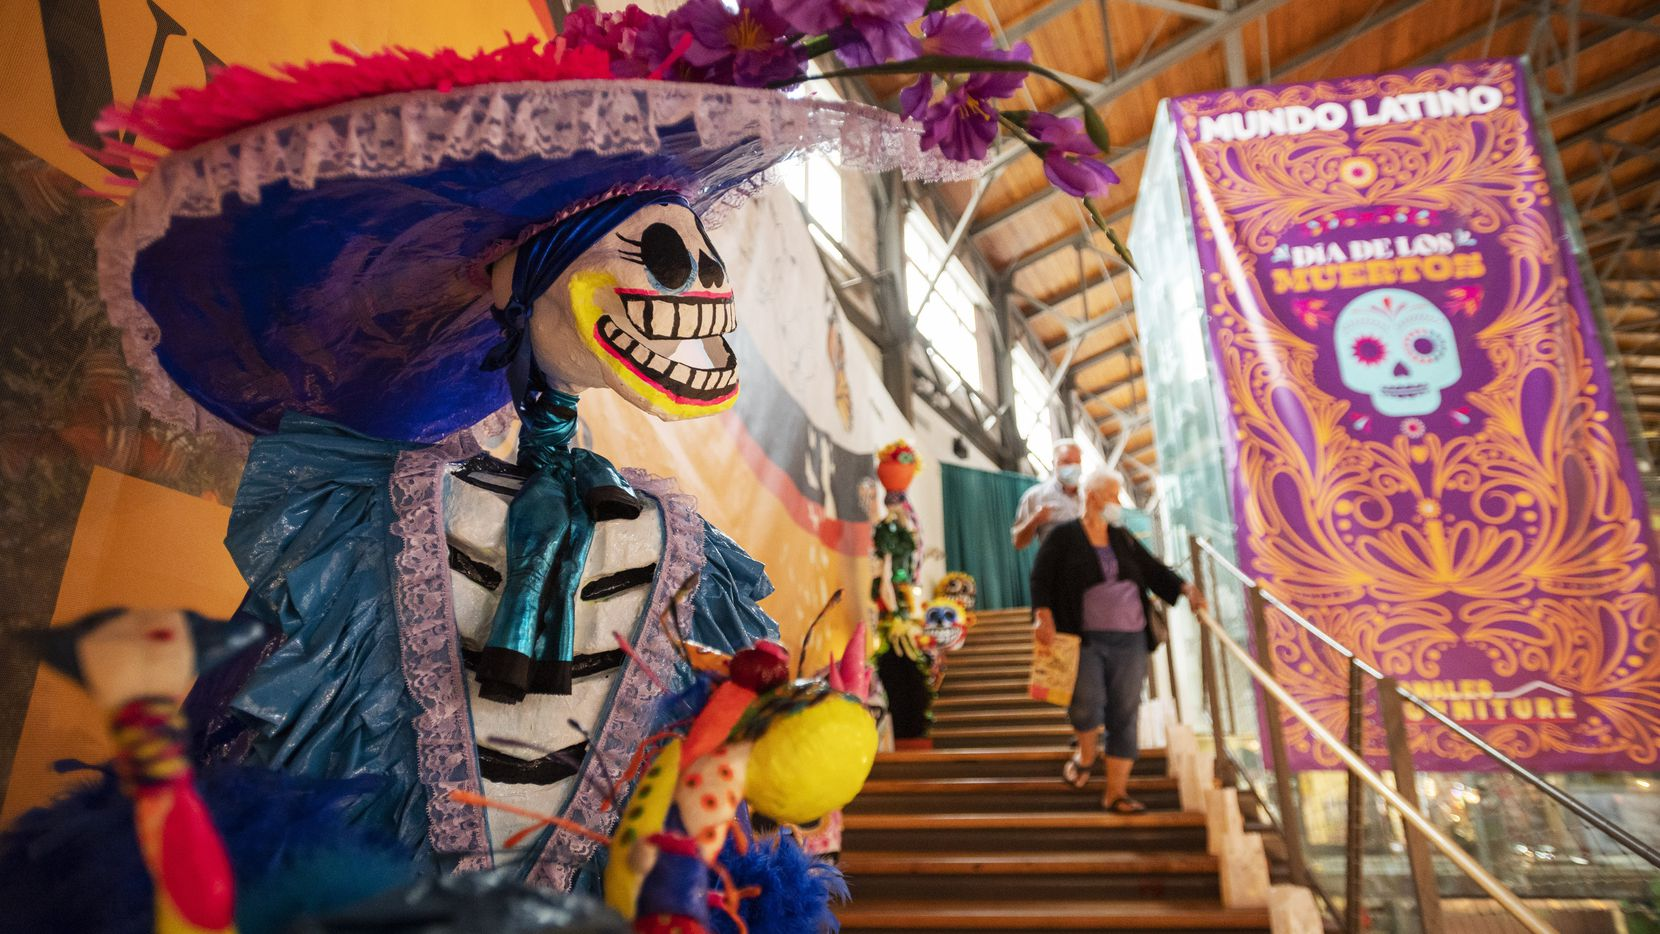 A large calavera decorates the stairwell that leads to the main exhibit hall celebrating Dia de los Muertos at the Mundo Latino exhibit inside the Women's Building at the State Fair of Texas, on Thursday, Sept. 30, 2021 in Dallas.